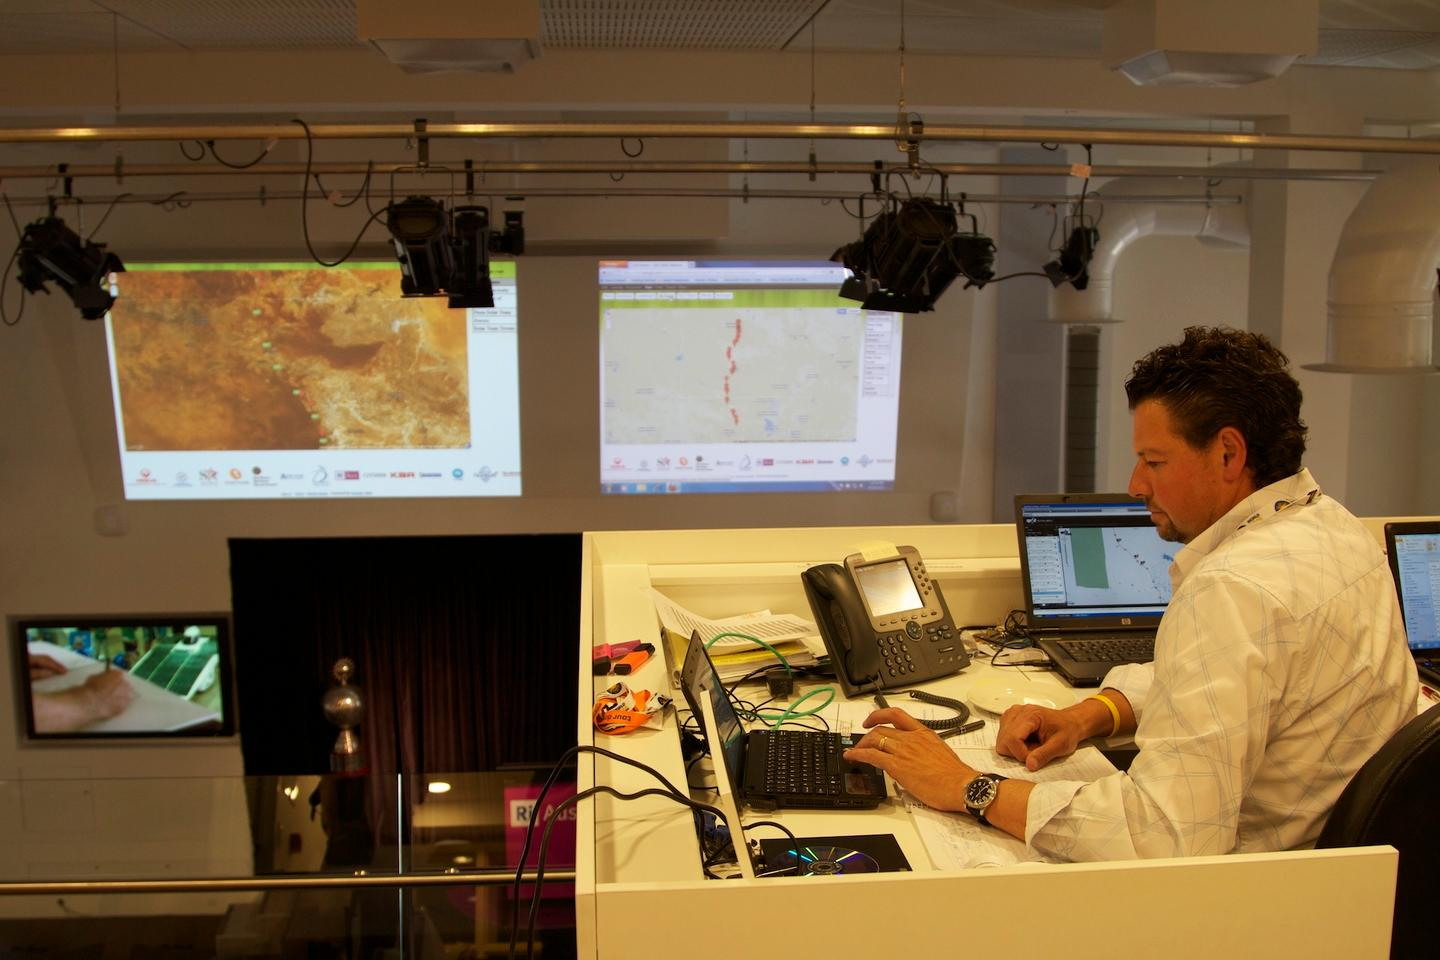 Mission Control in Adelaide during the 2011 World Solar Challenge (Photo: gizmag)